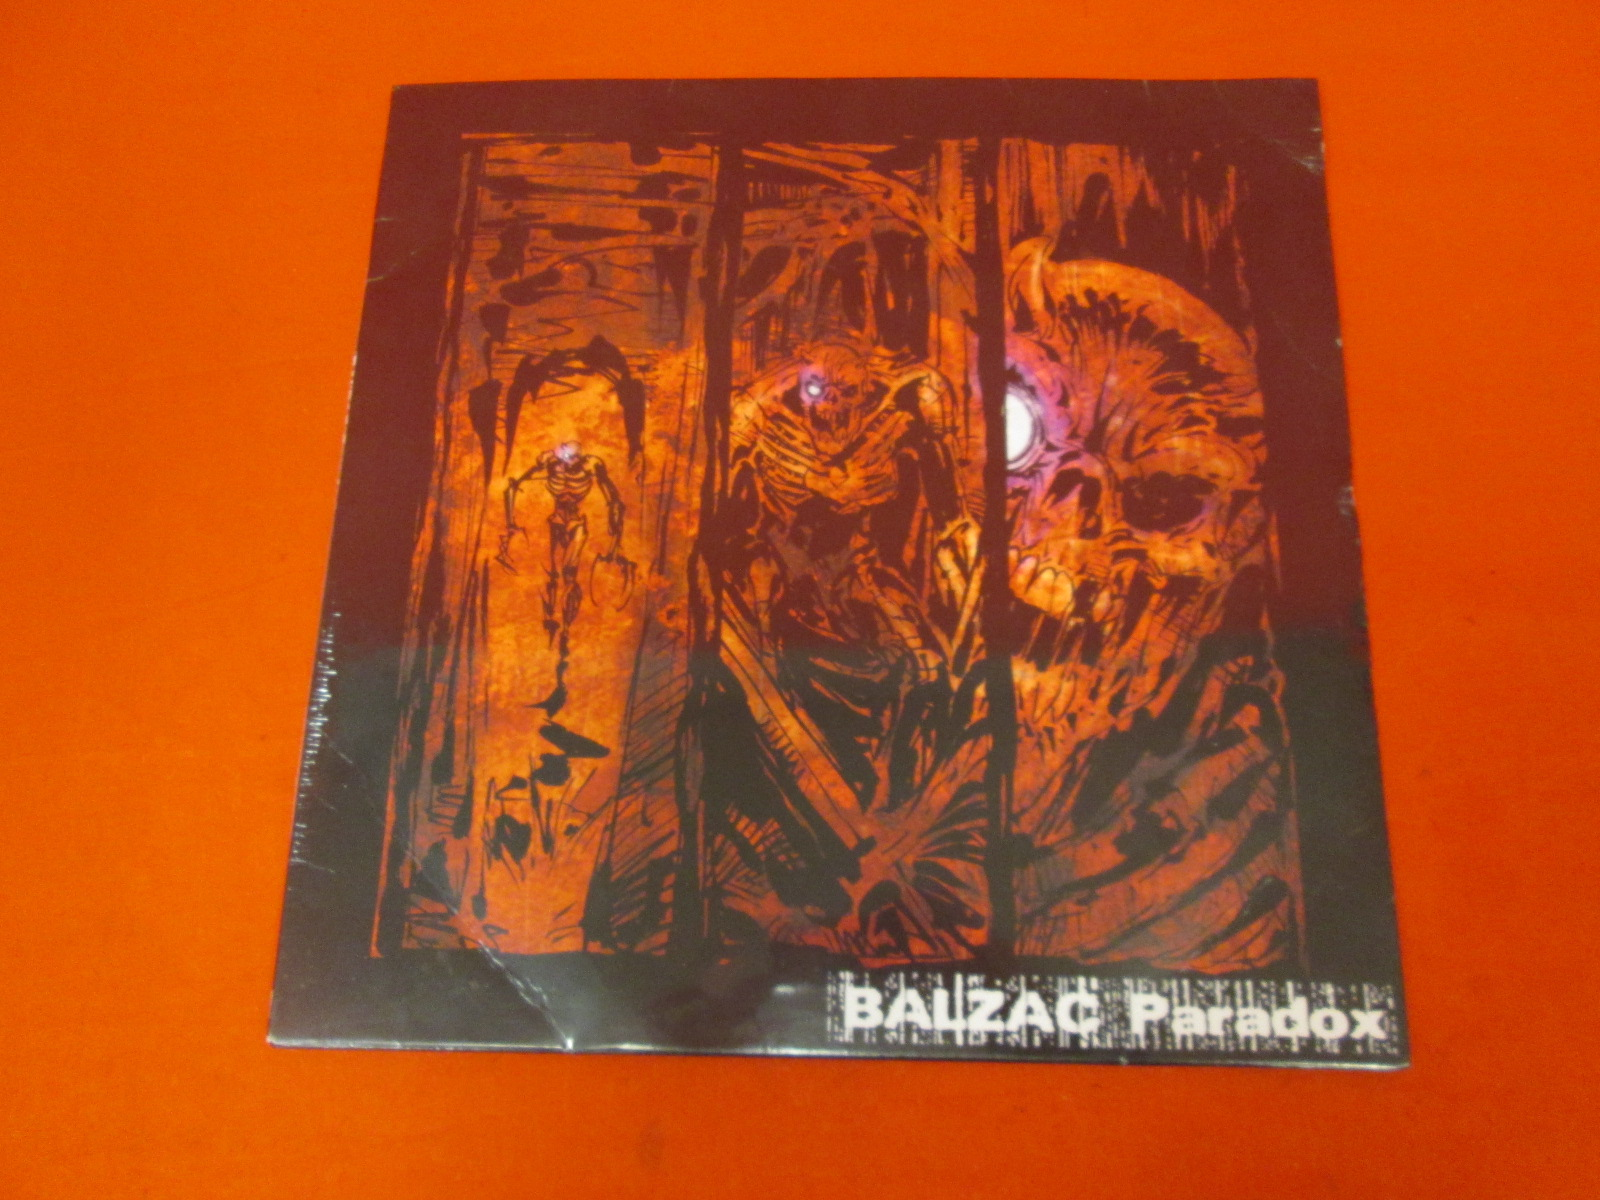 Paradox By Balzac On LP Vinyl Record